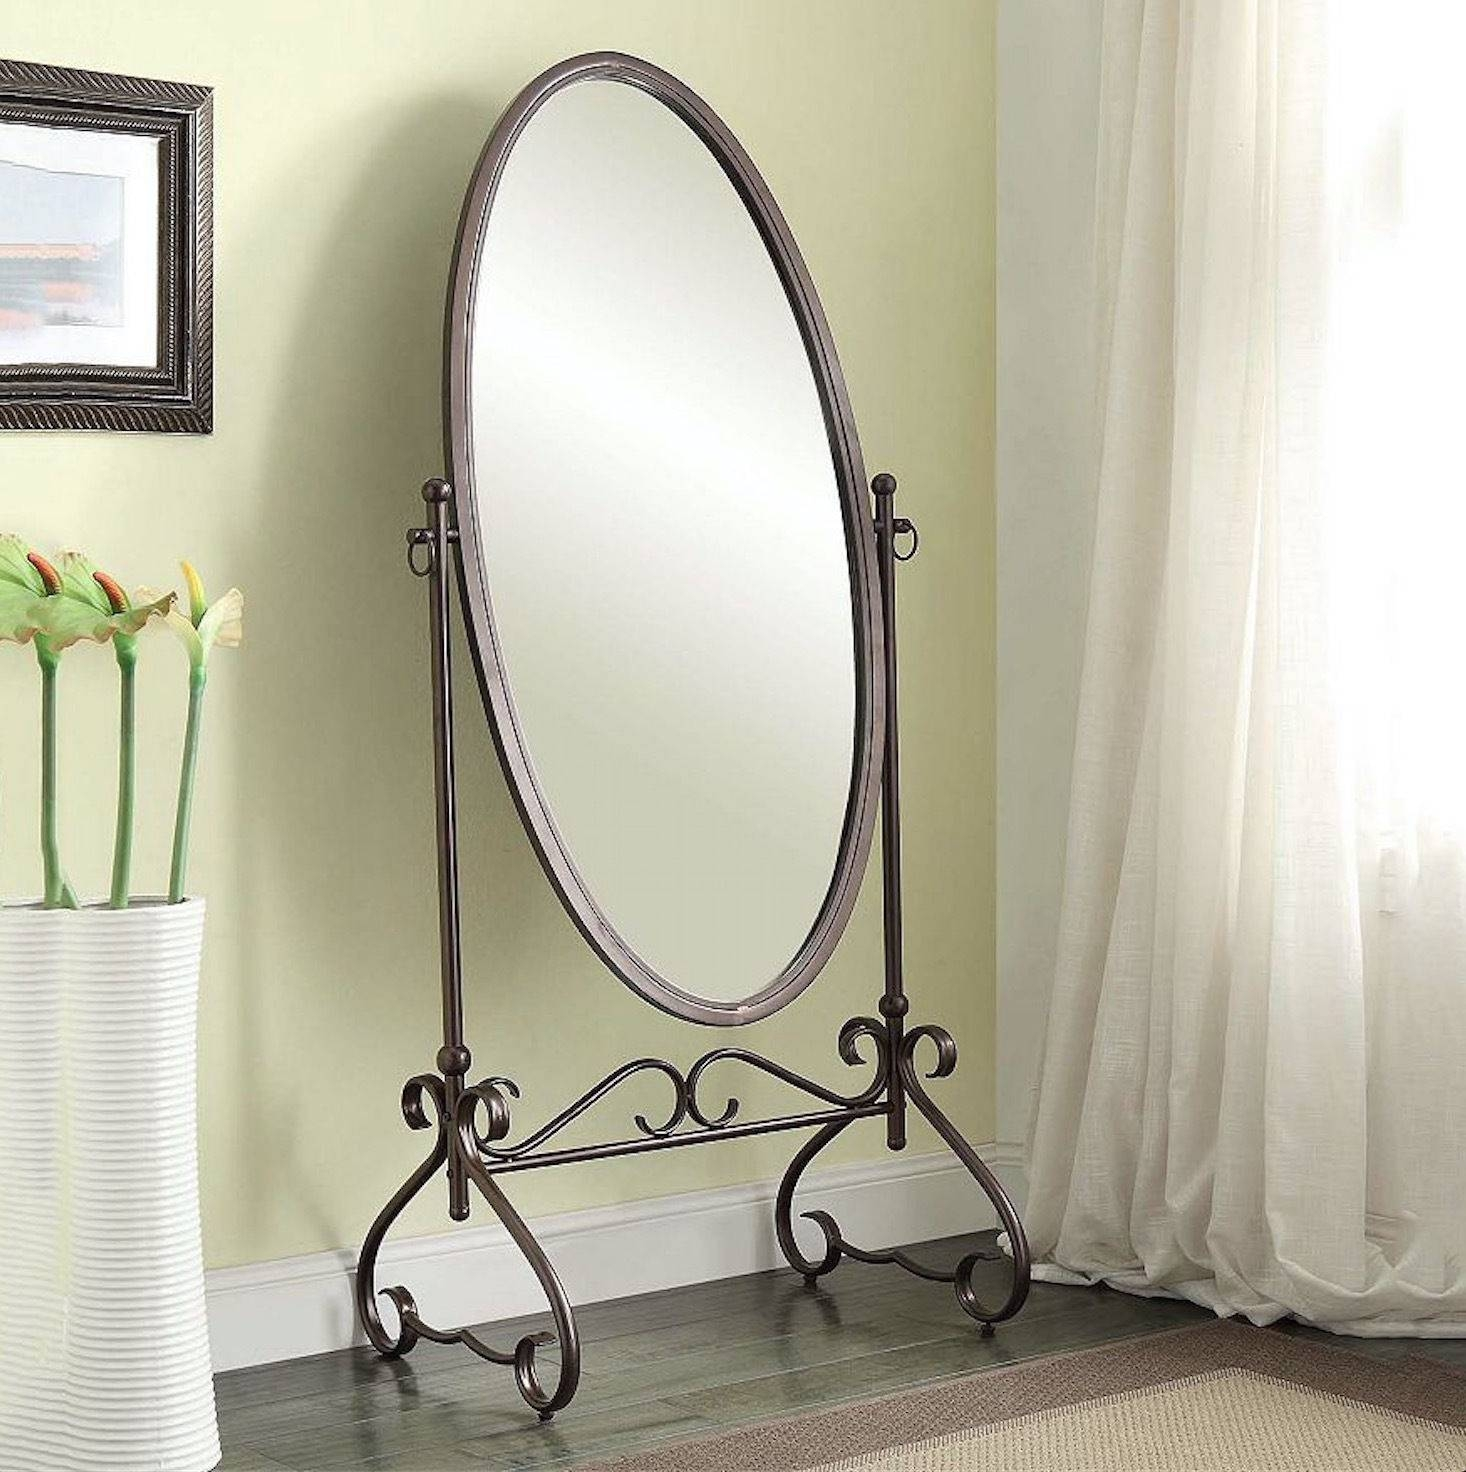 Cheval Floor Mirror Large Oval Antique Bedroom Full Length Tilt with Free Standing Oval Mirrors (Image 9 of 25)